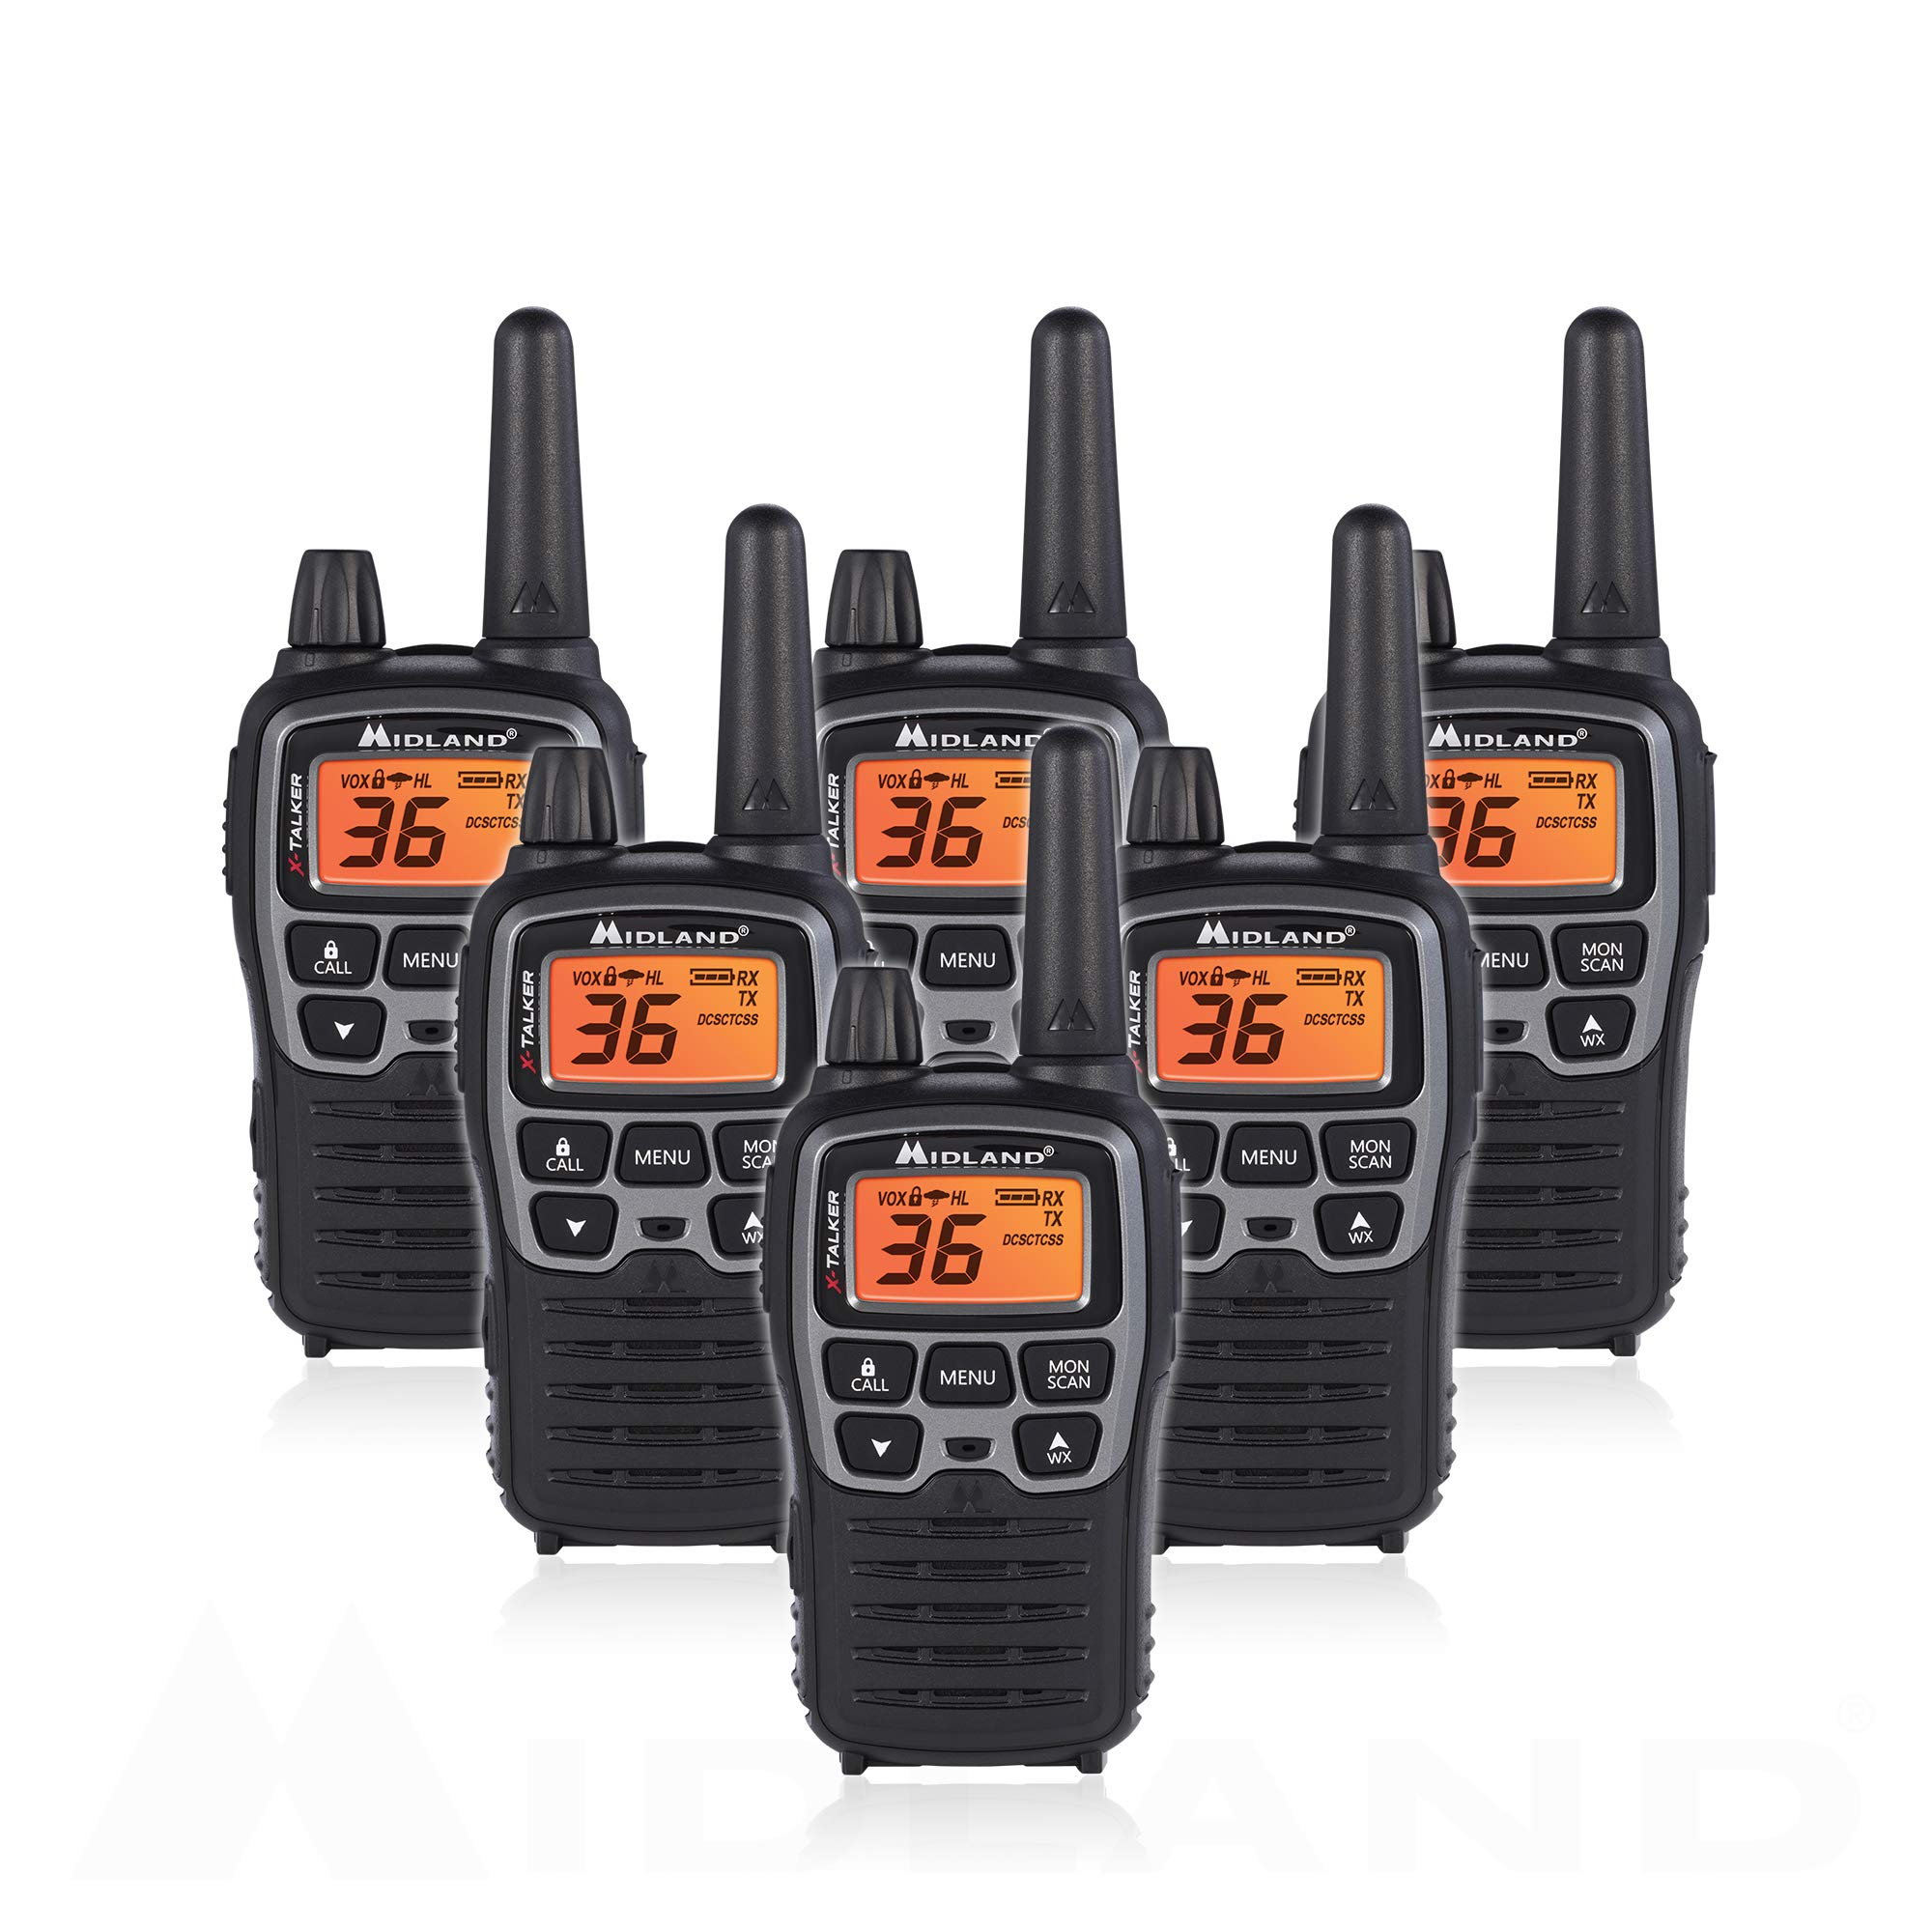 Midland T71VP3 36 Channel FRS Two-Way Radio - Up to 38 Mile Range Walkie Talkie - Black/Silver (Pack of 6)